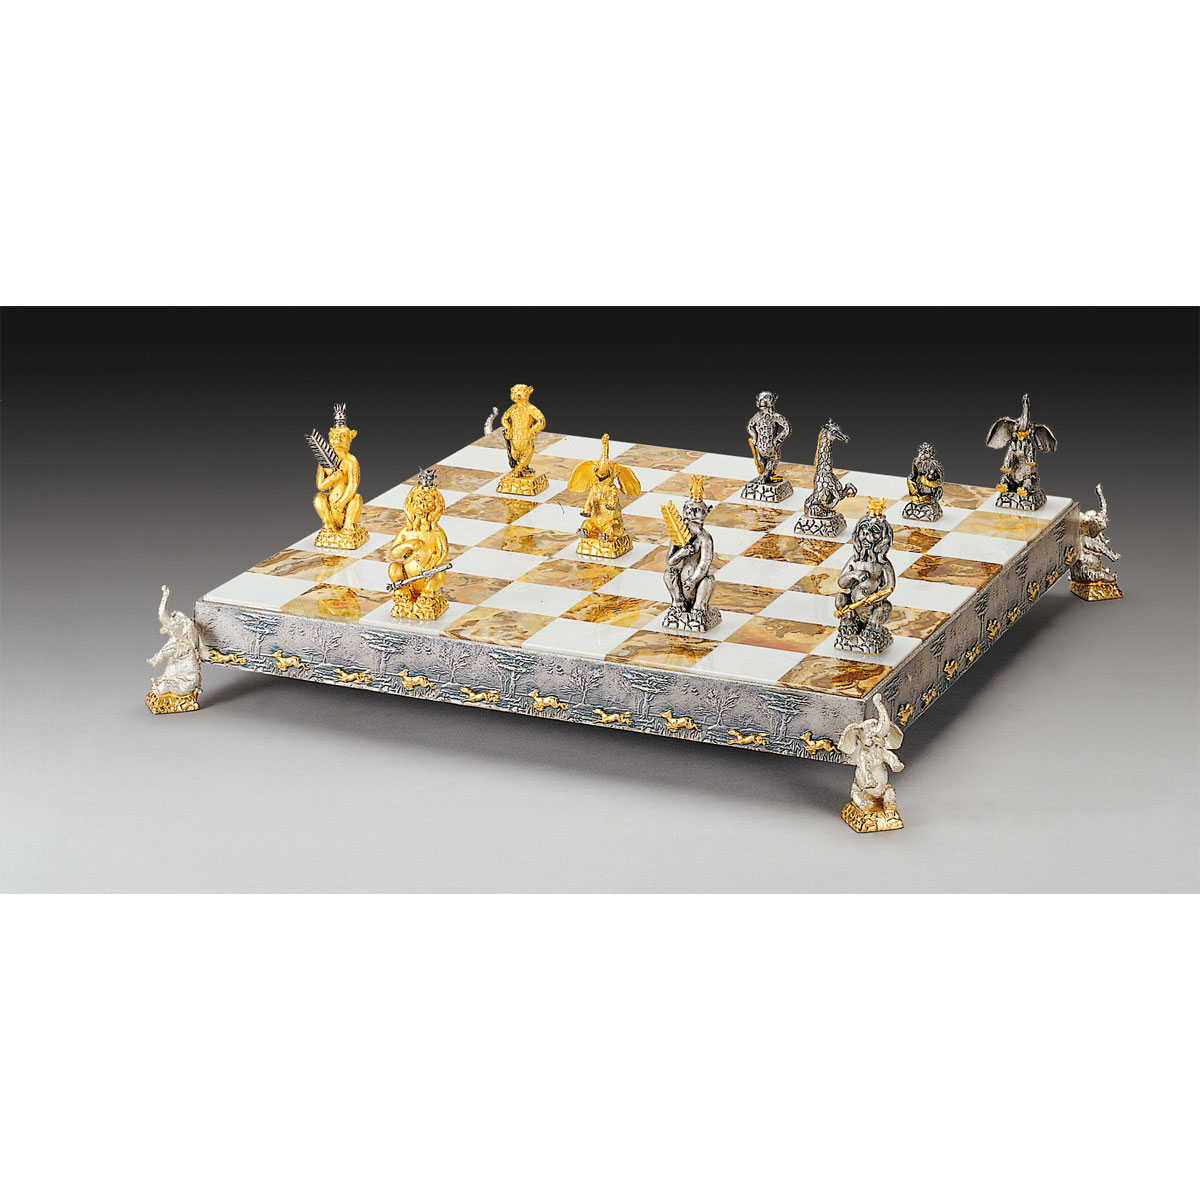 Jungle Animals Gold and Silver Themed Chess Board